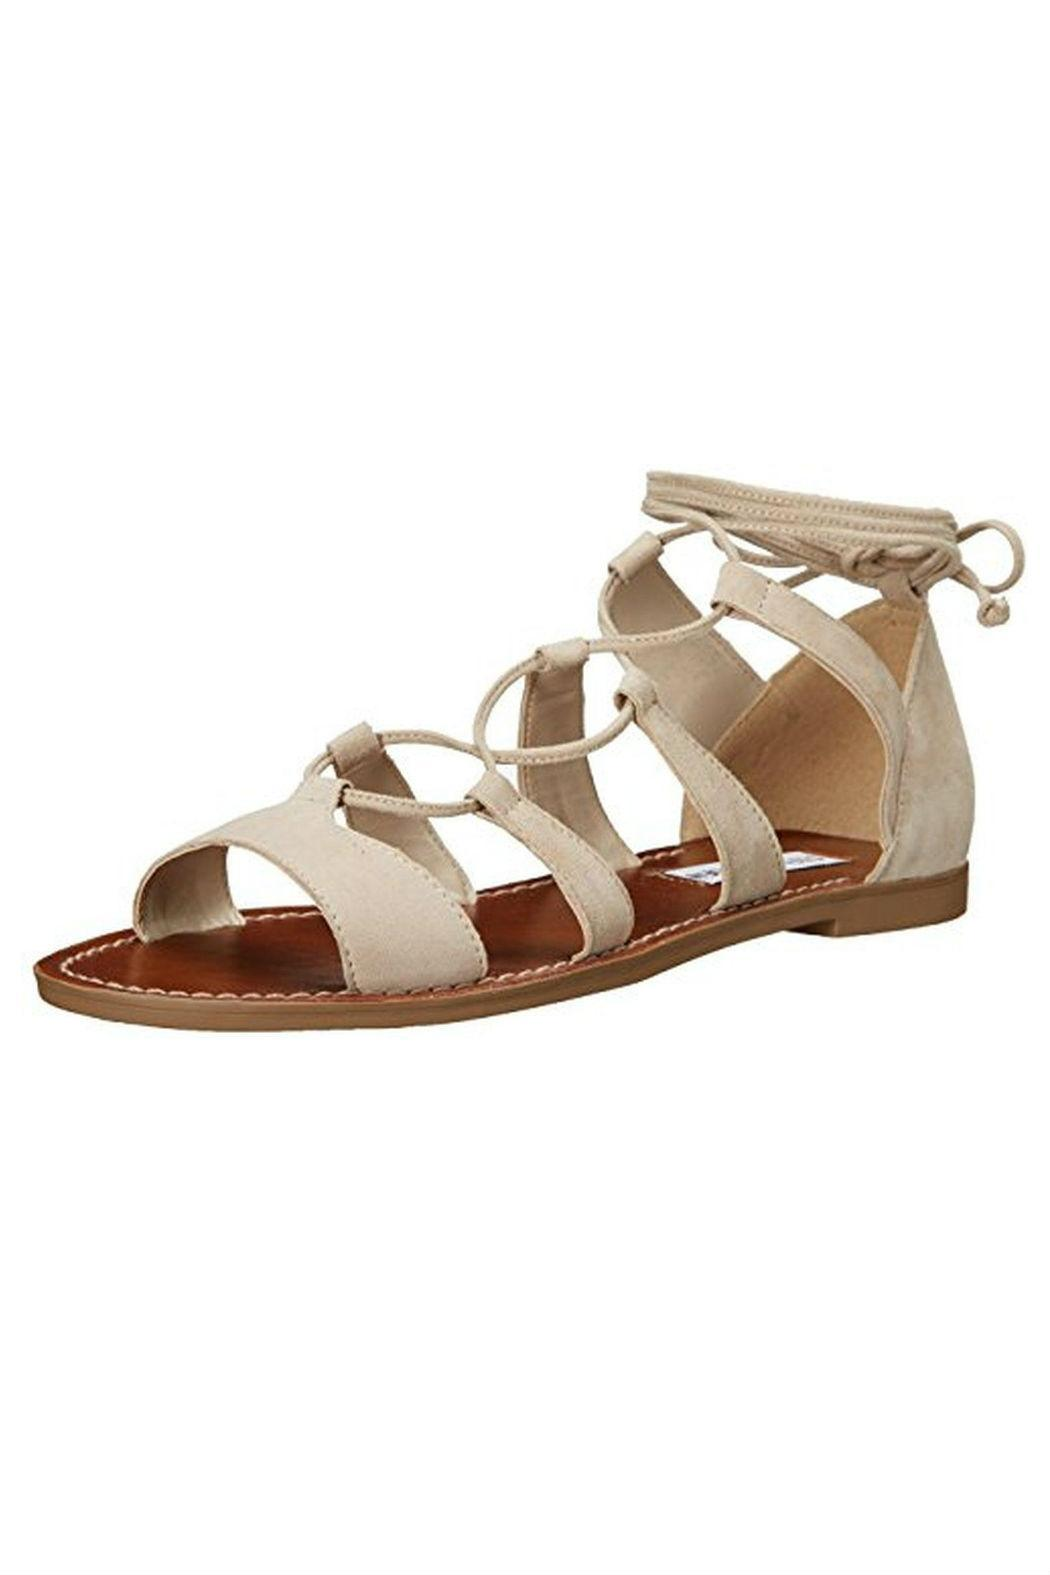 Steve Madden Sandal From Los Angeles By The Brand Shoptiques